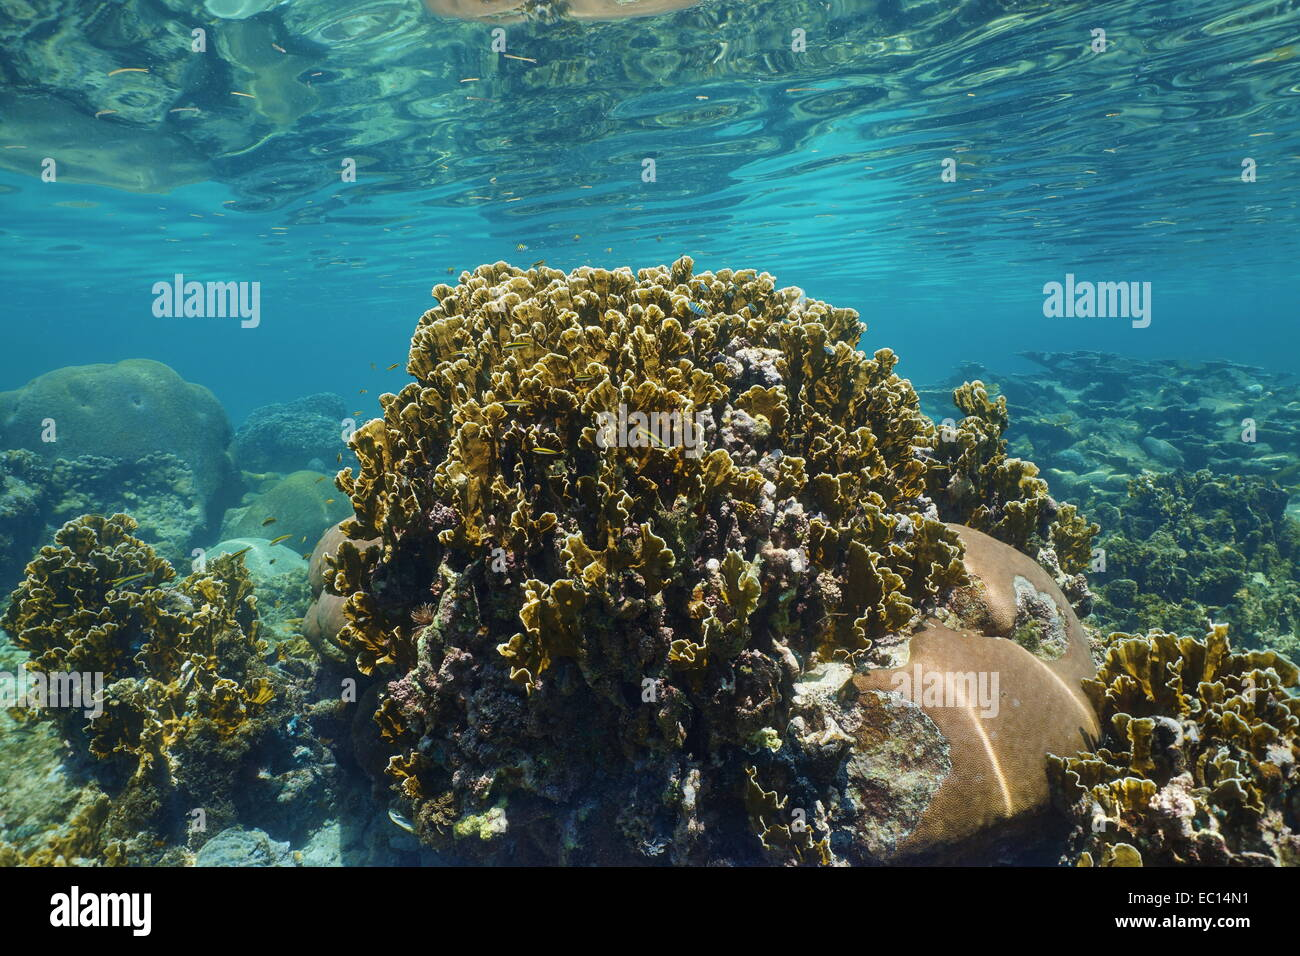 Bladed fire coral in a shallow reef with ripples of underwater surface, Caribbean sea - Stock Image